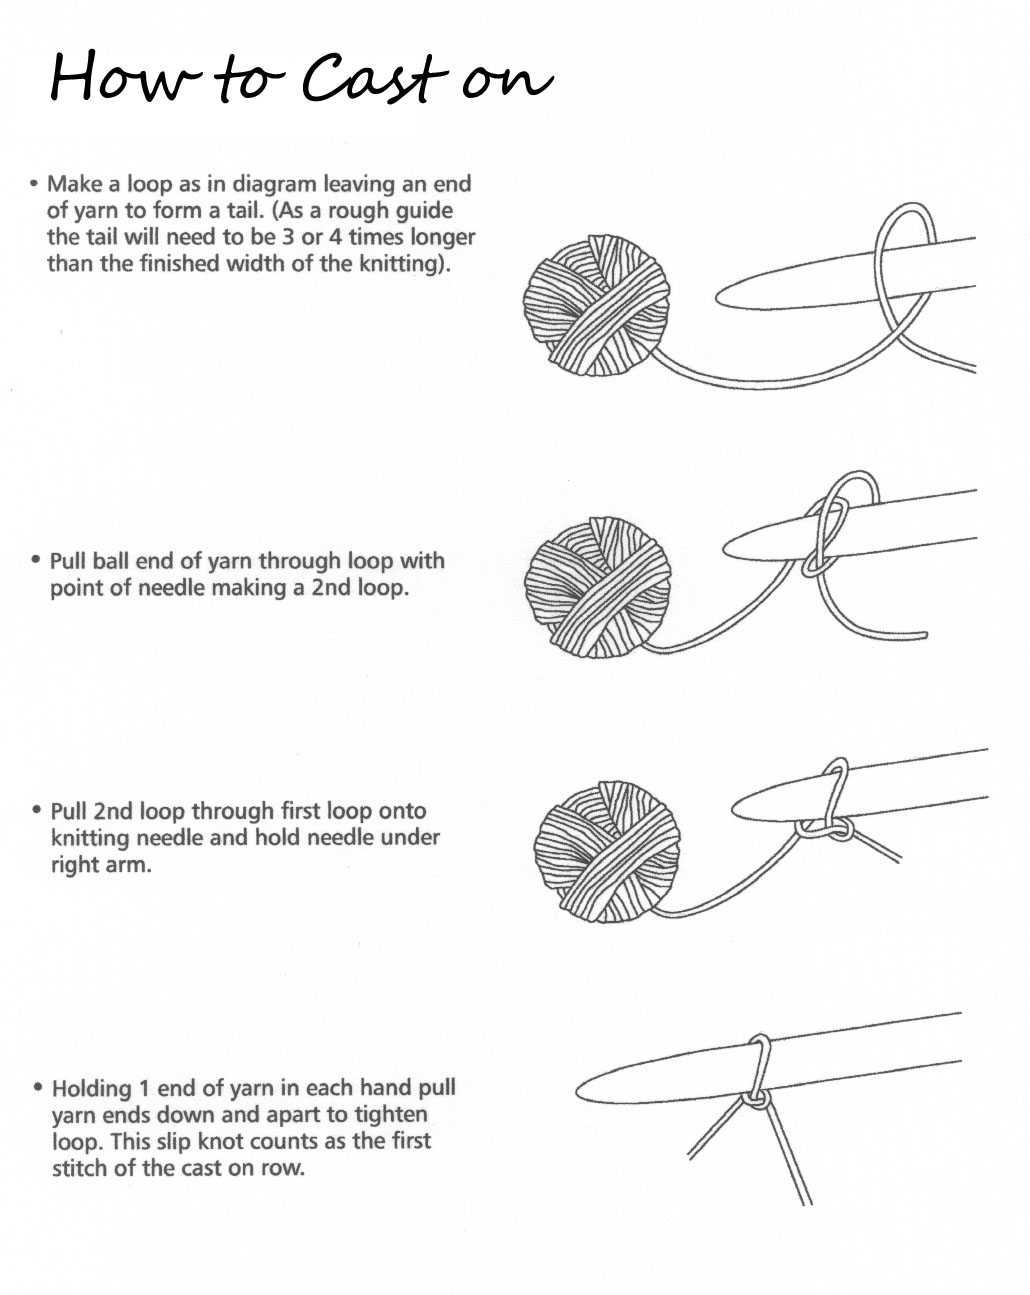 How To Knit First Stich Slip Knot Diagram